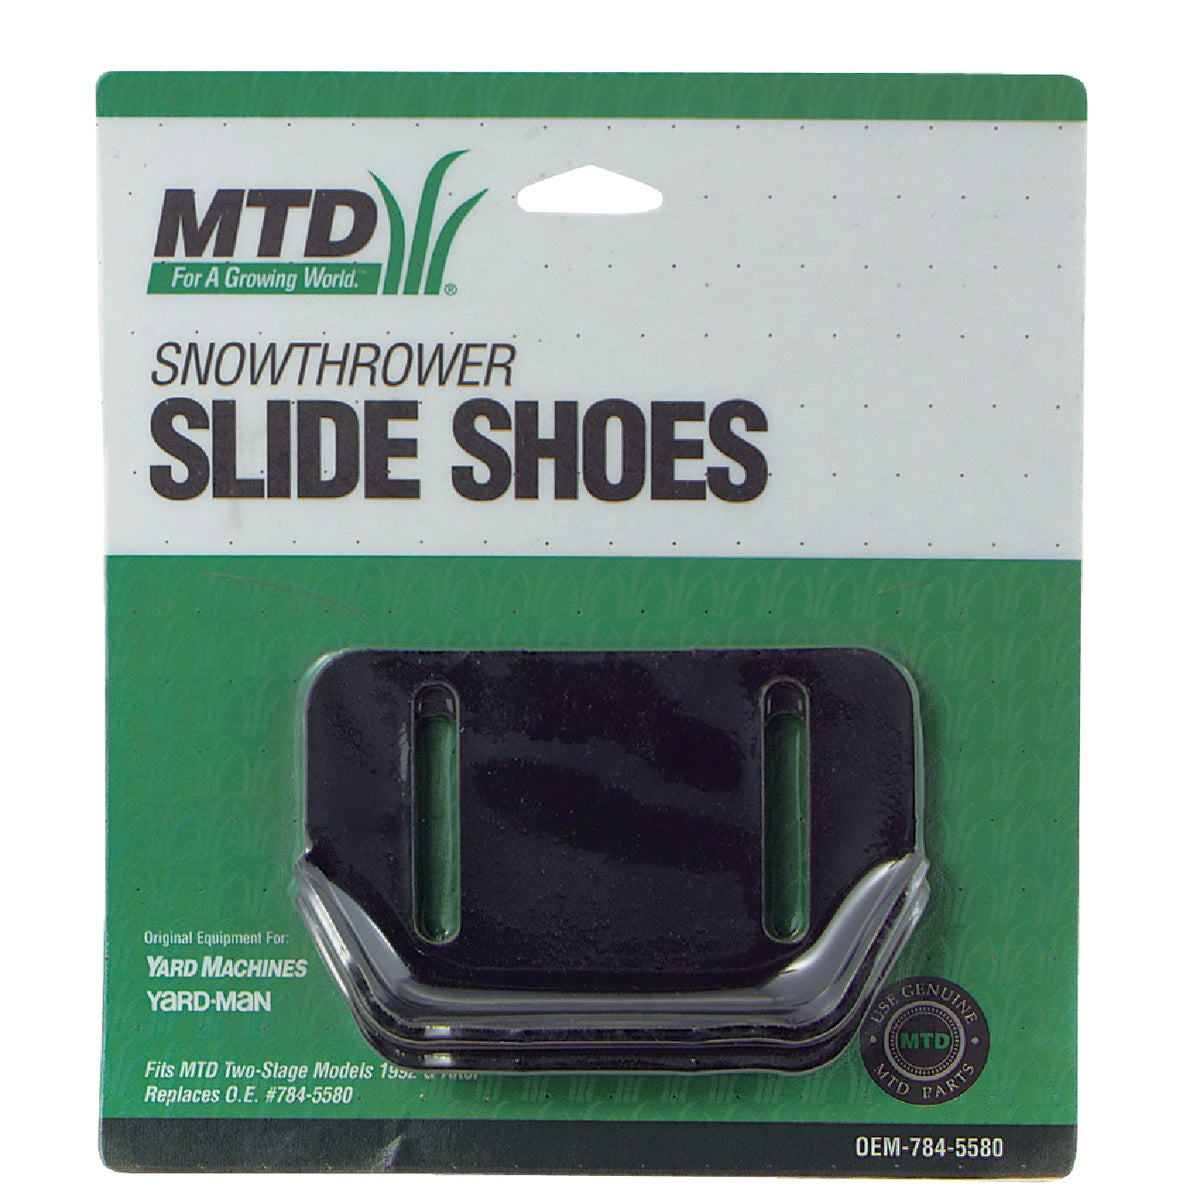 MTD SNOWTHRW SLIDE SHOES - OEM-784-5580 by Arnold Corp